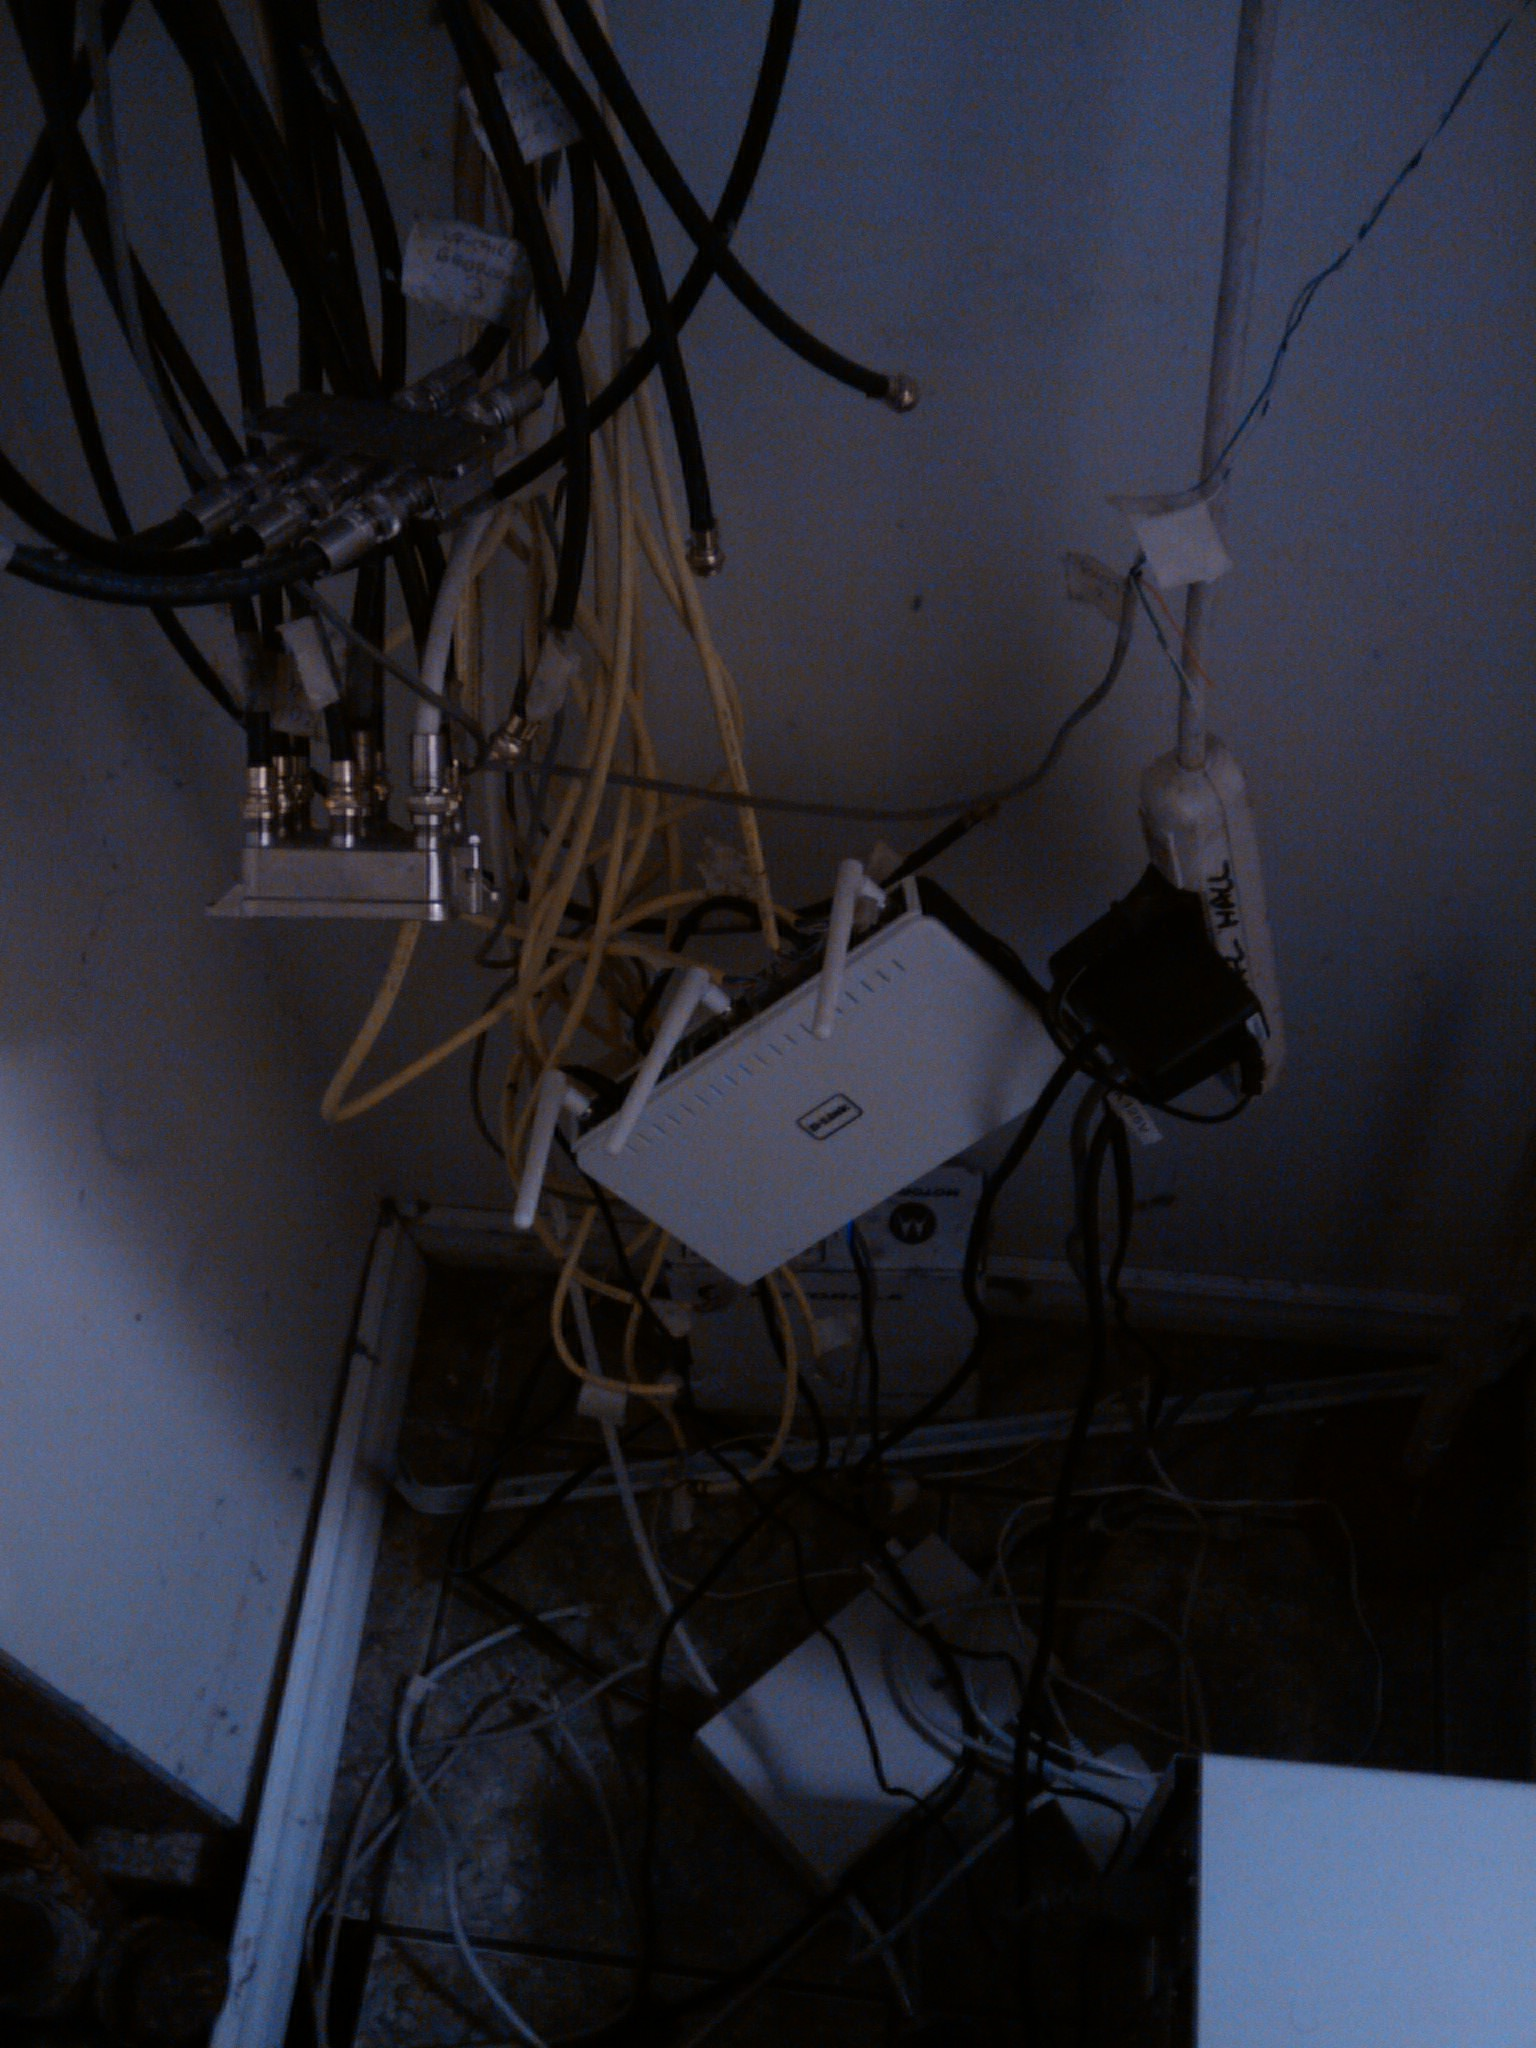 Playing Music Over The Network Clarke Brunsdon Wiring Closet Mess Wireless